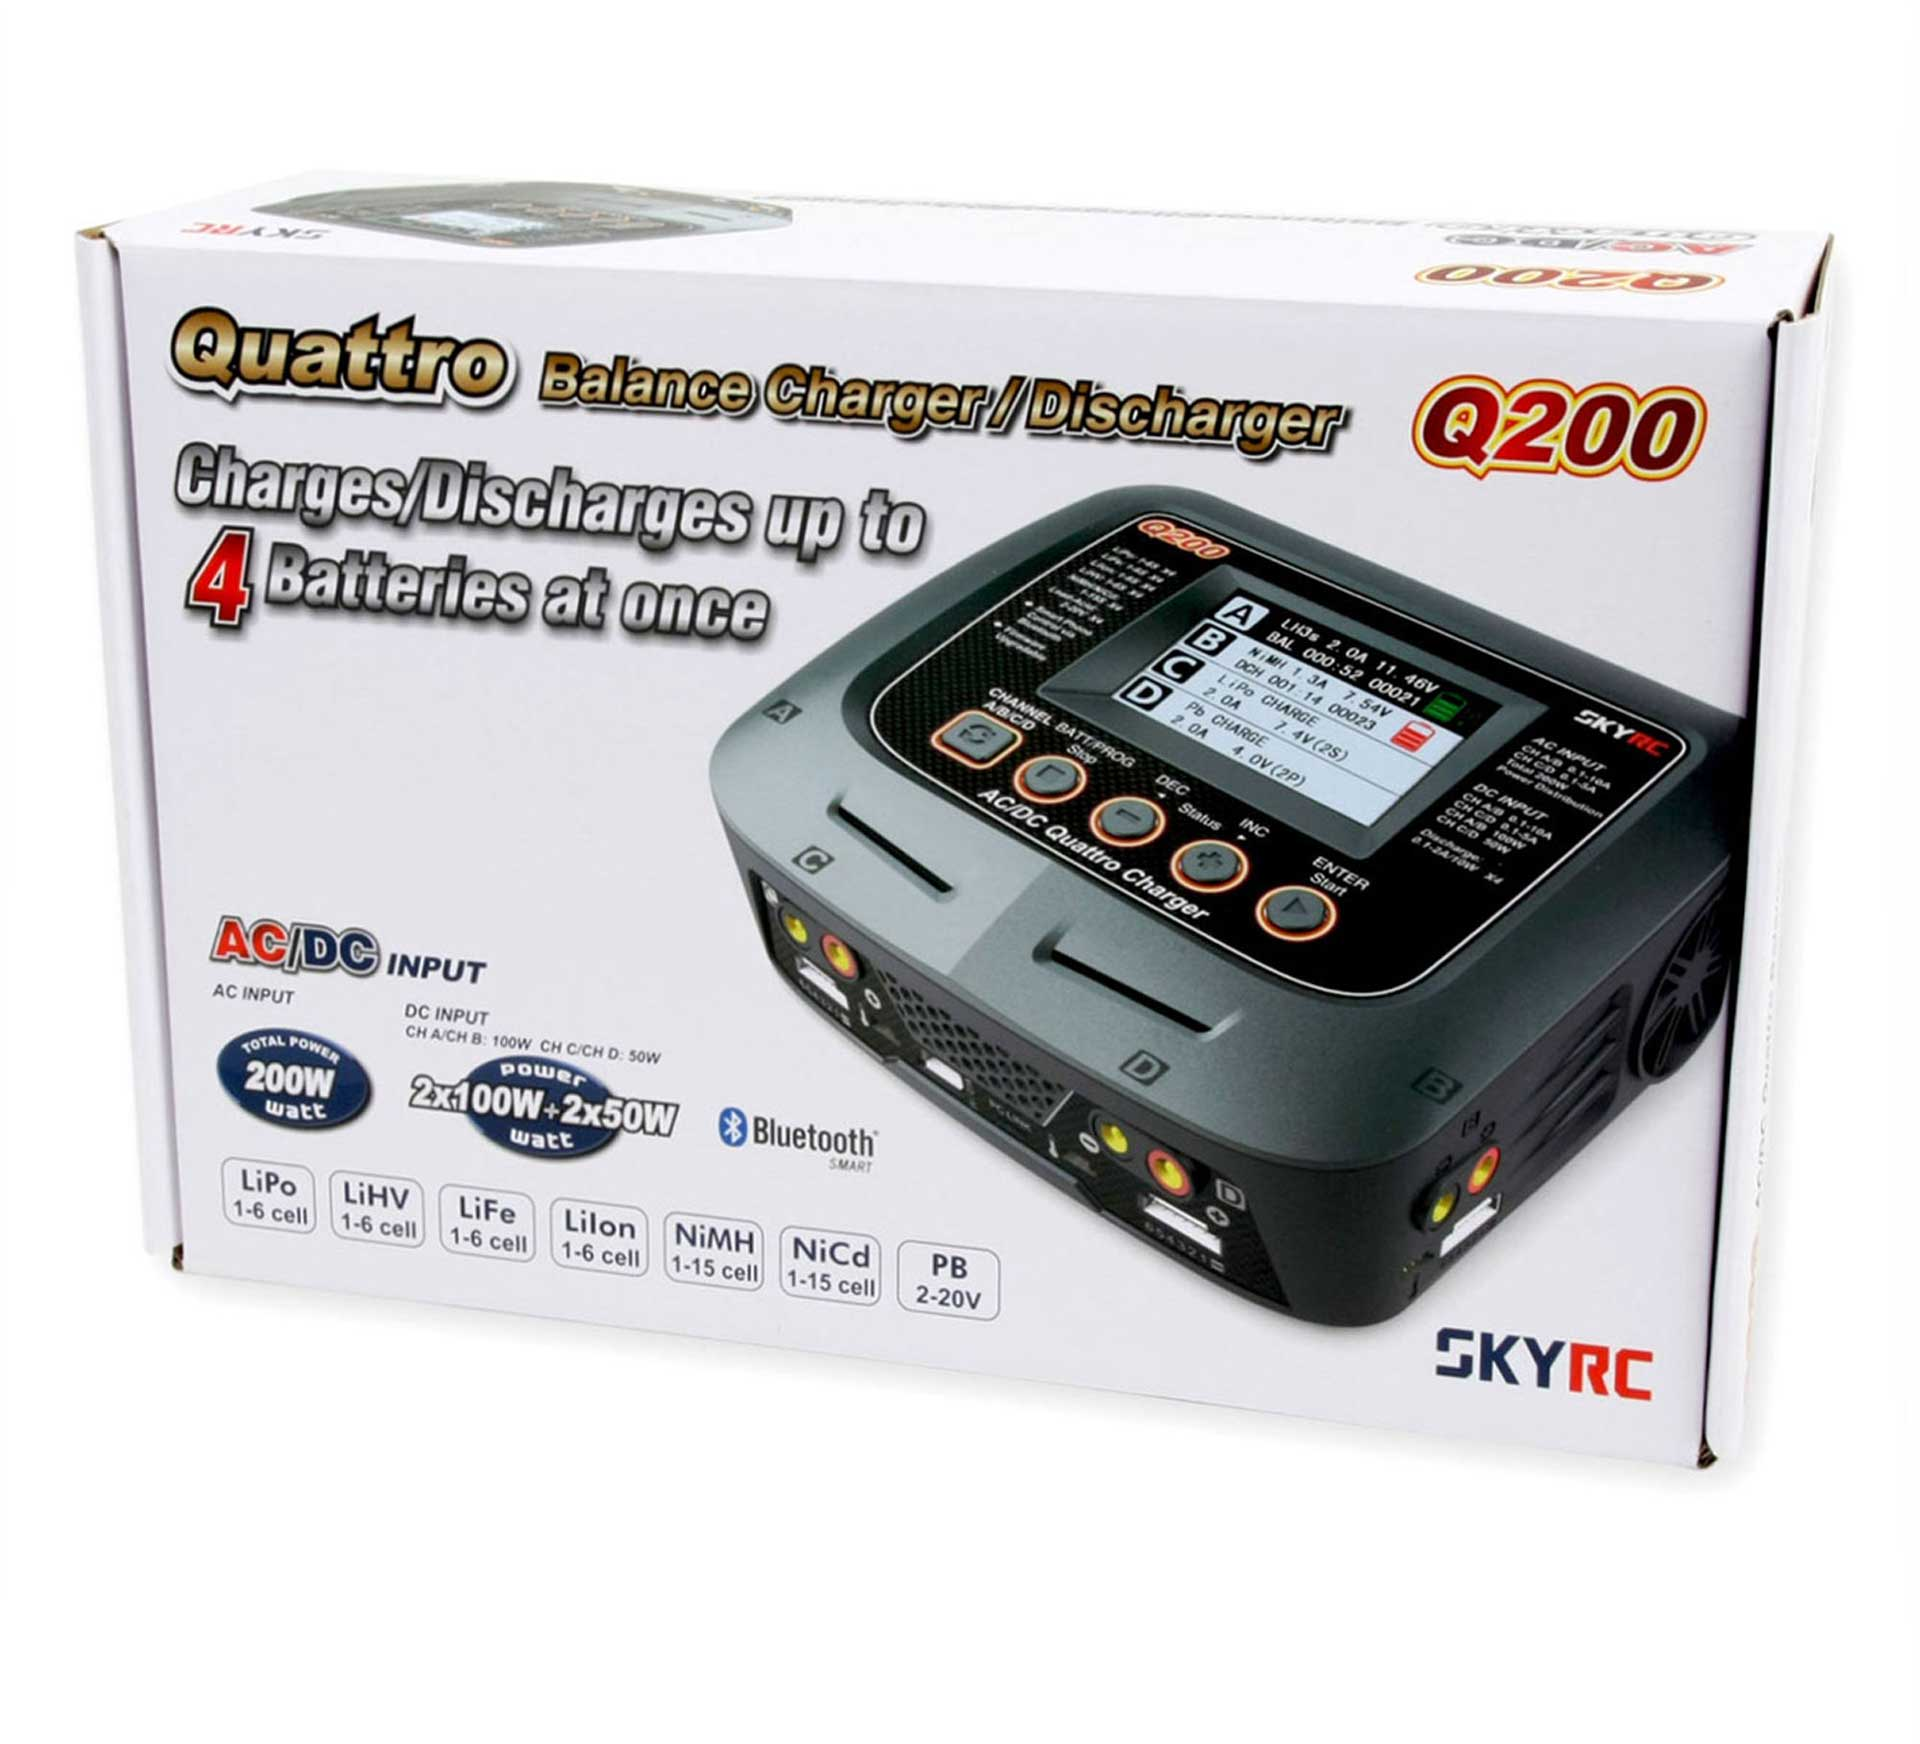 SKYRC Q200 Charger with 4 exits 1-6S 10A AC/DC 2x100W 2x50W